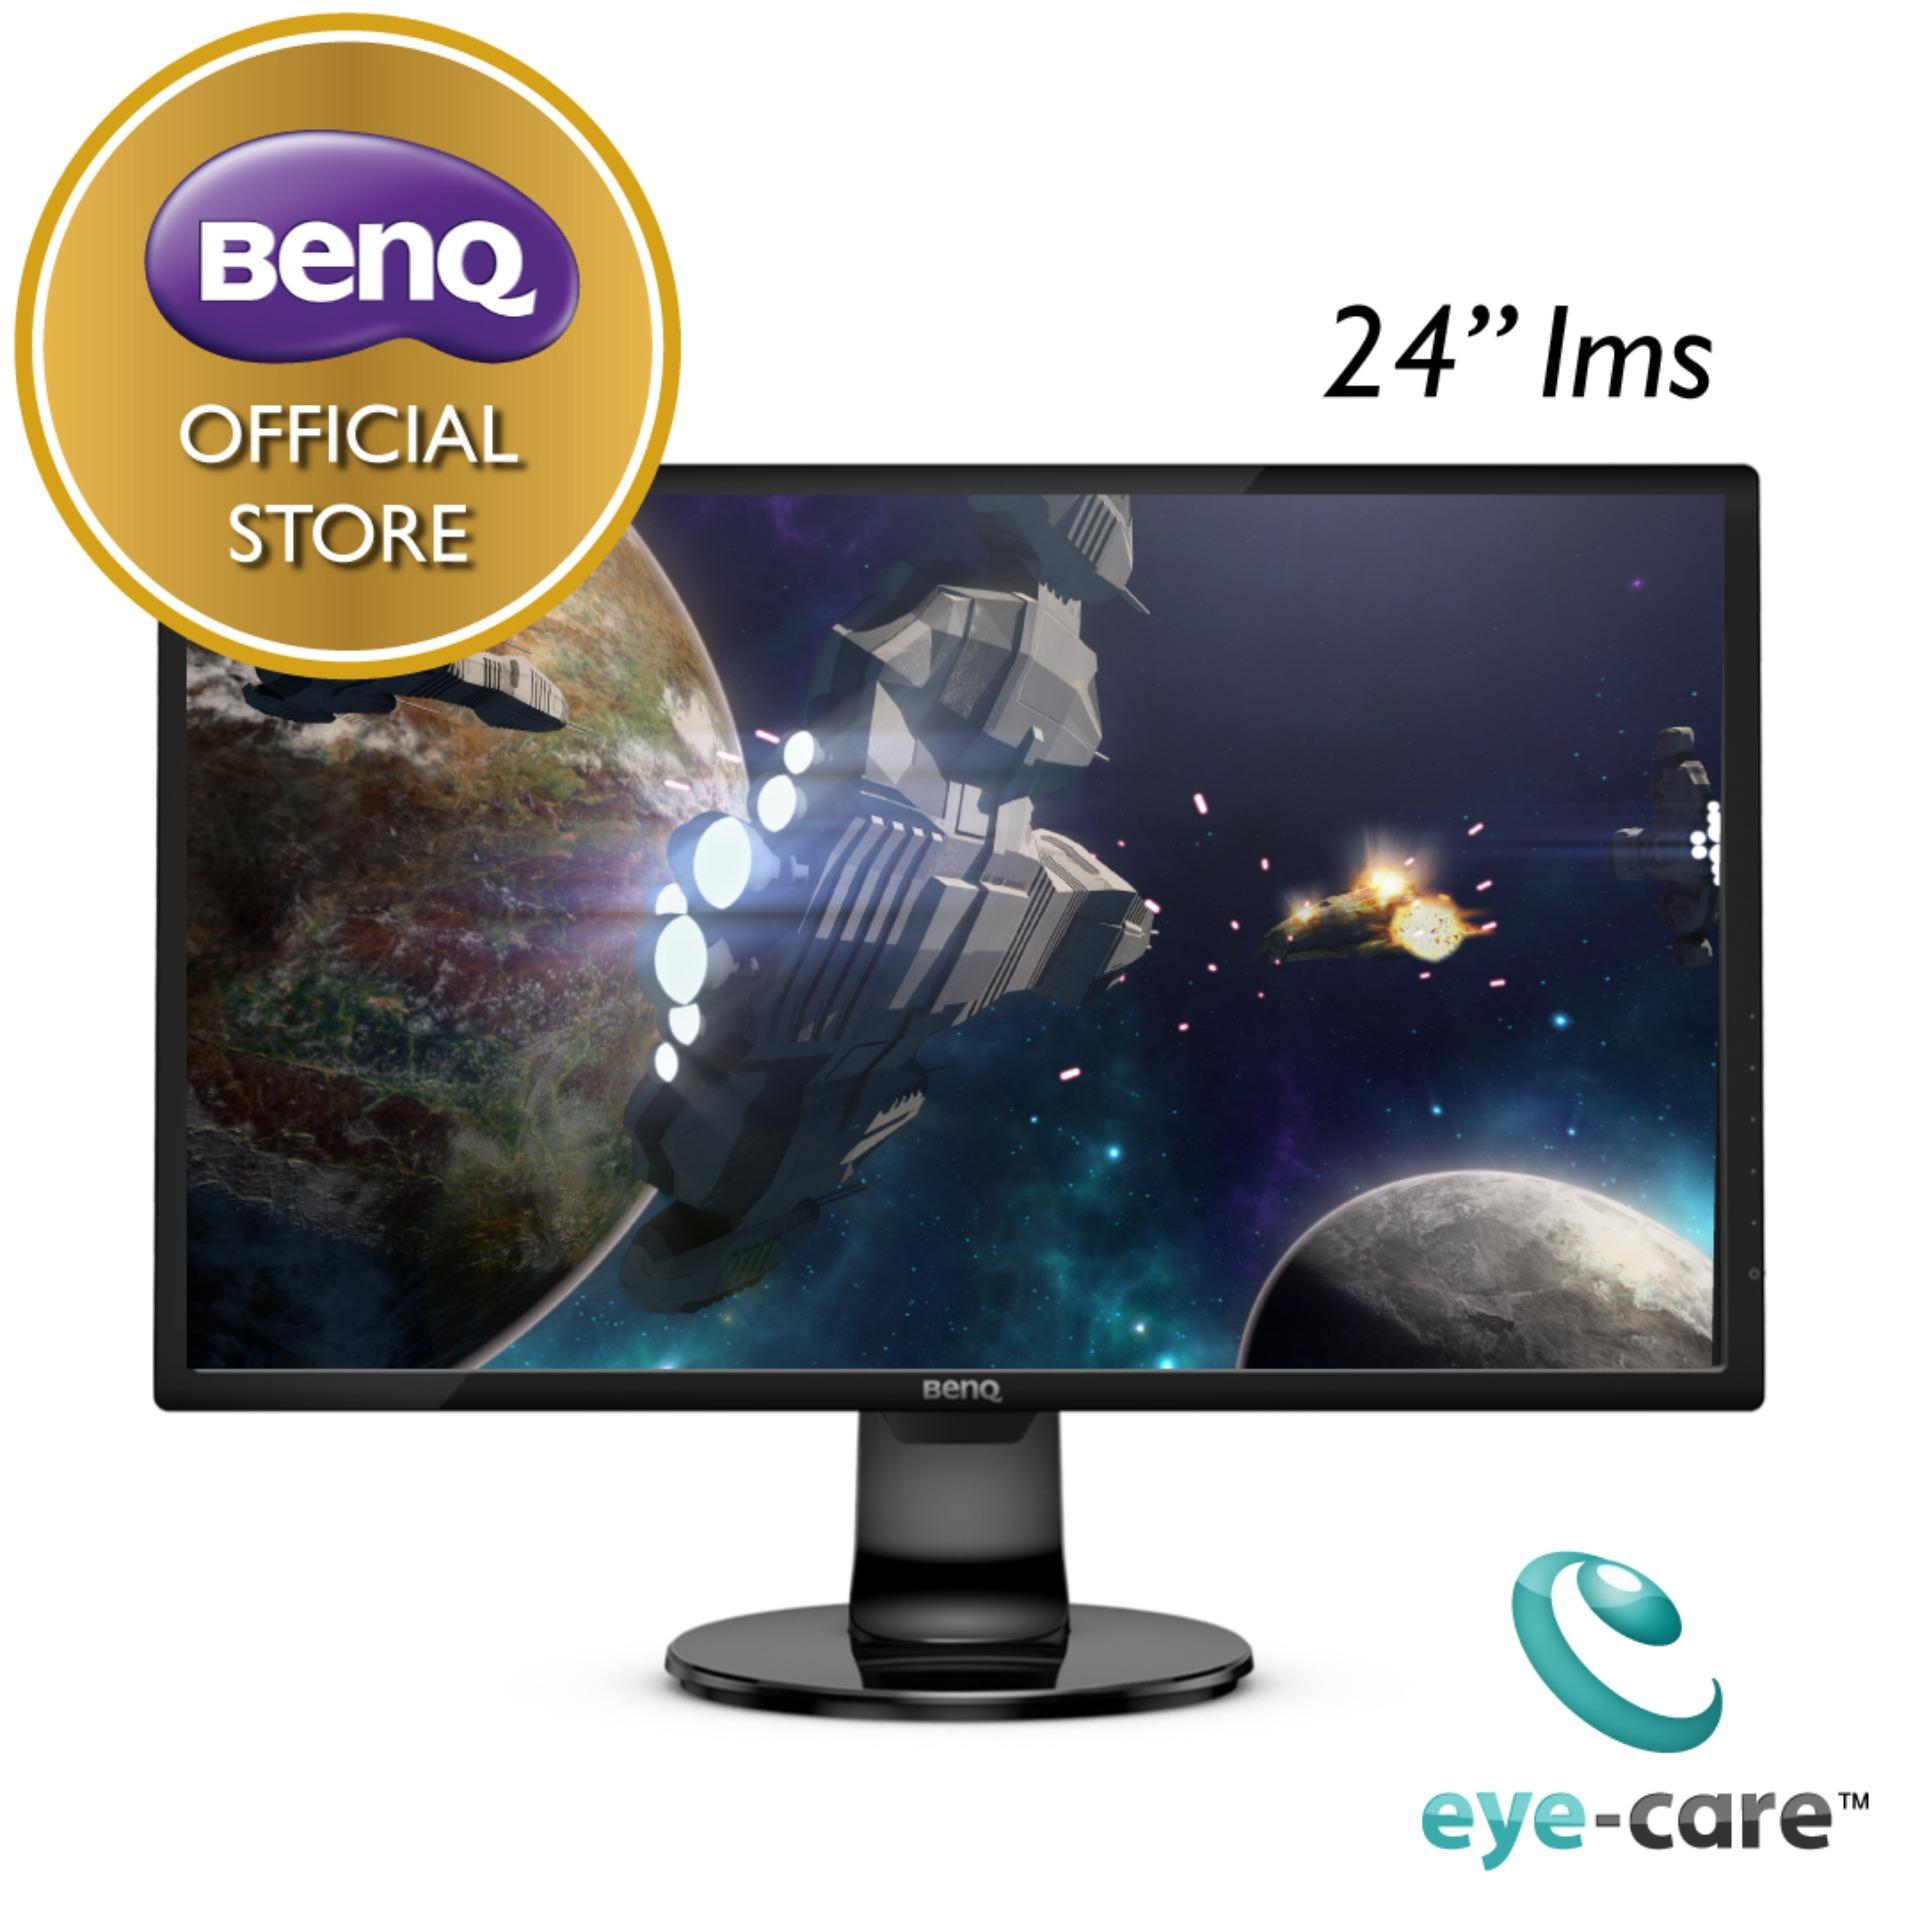 BenQ GL2460BH HDMI, D-Sub, DVI ports Screen Auto-adjustment Eye Care Monitor